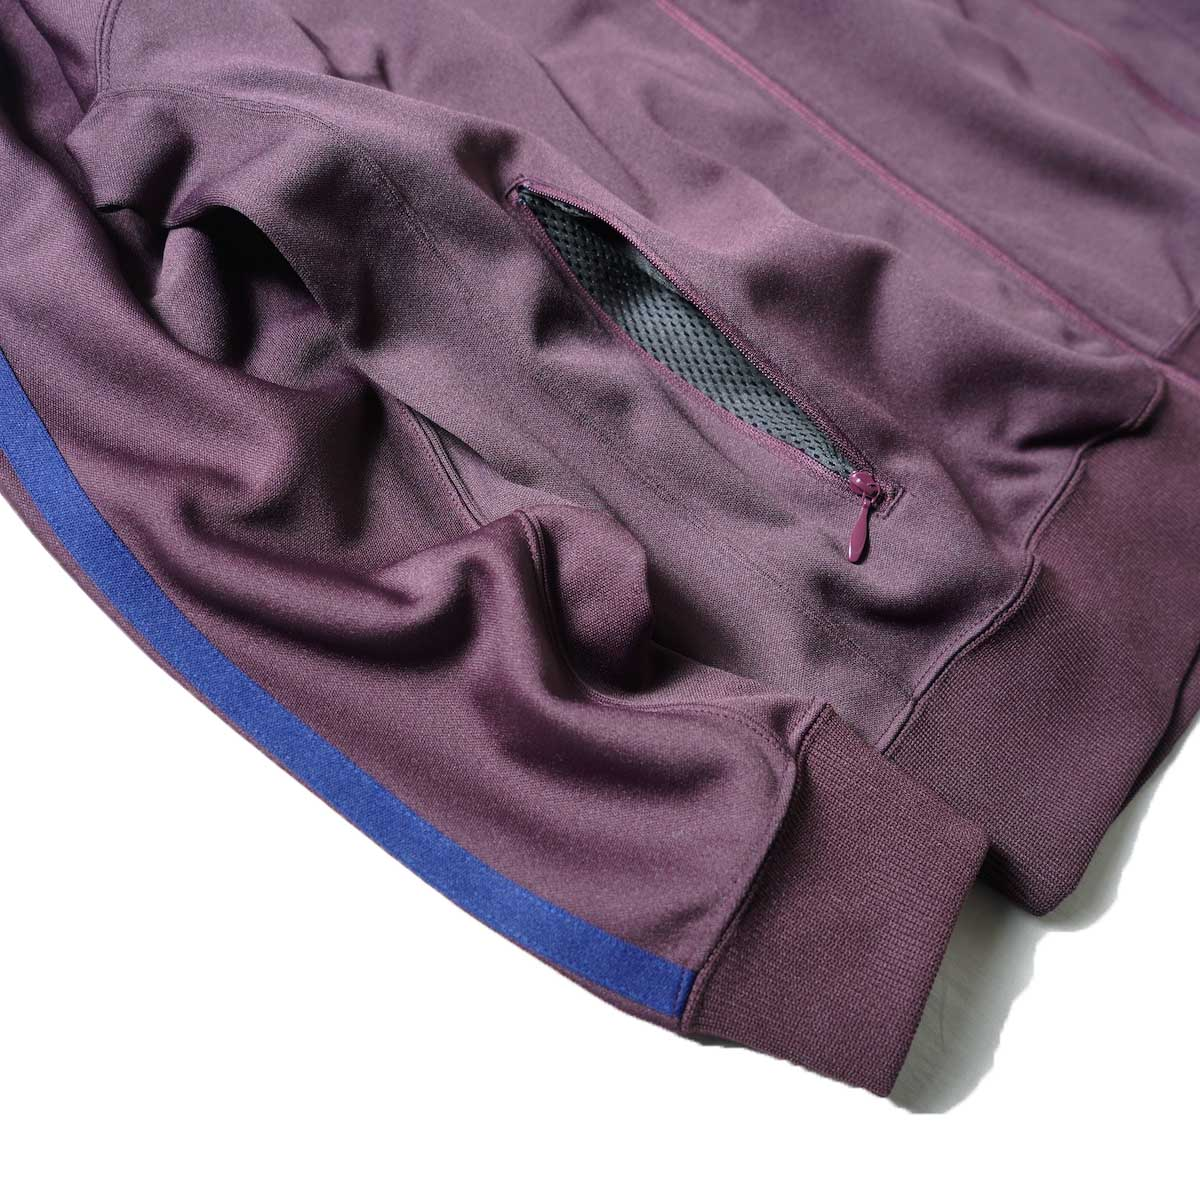 South2 West8 / Trainer jacket - Poly Smooth (Burgundy)ポケット